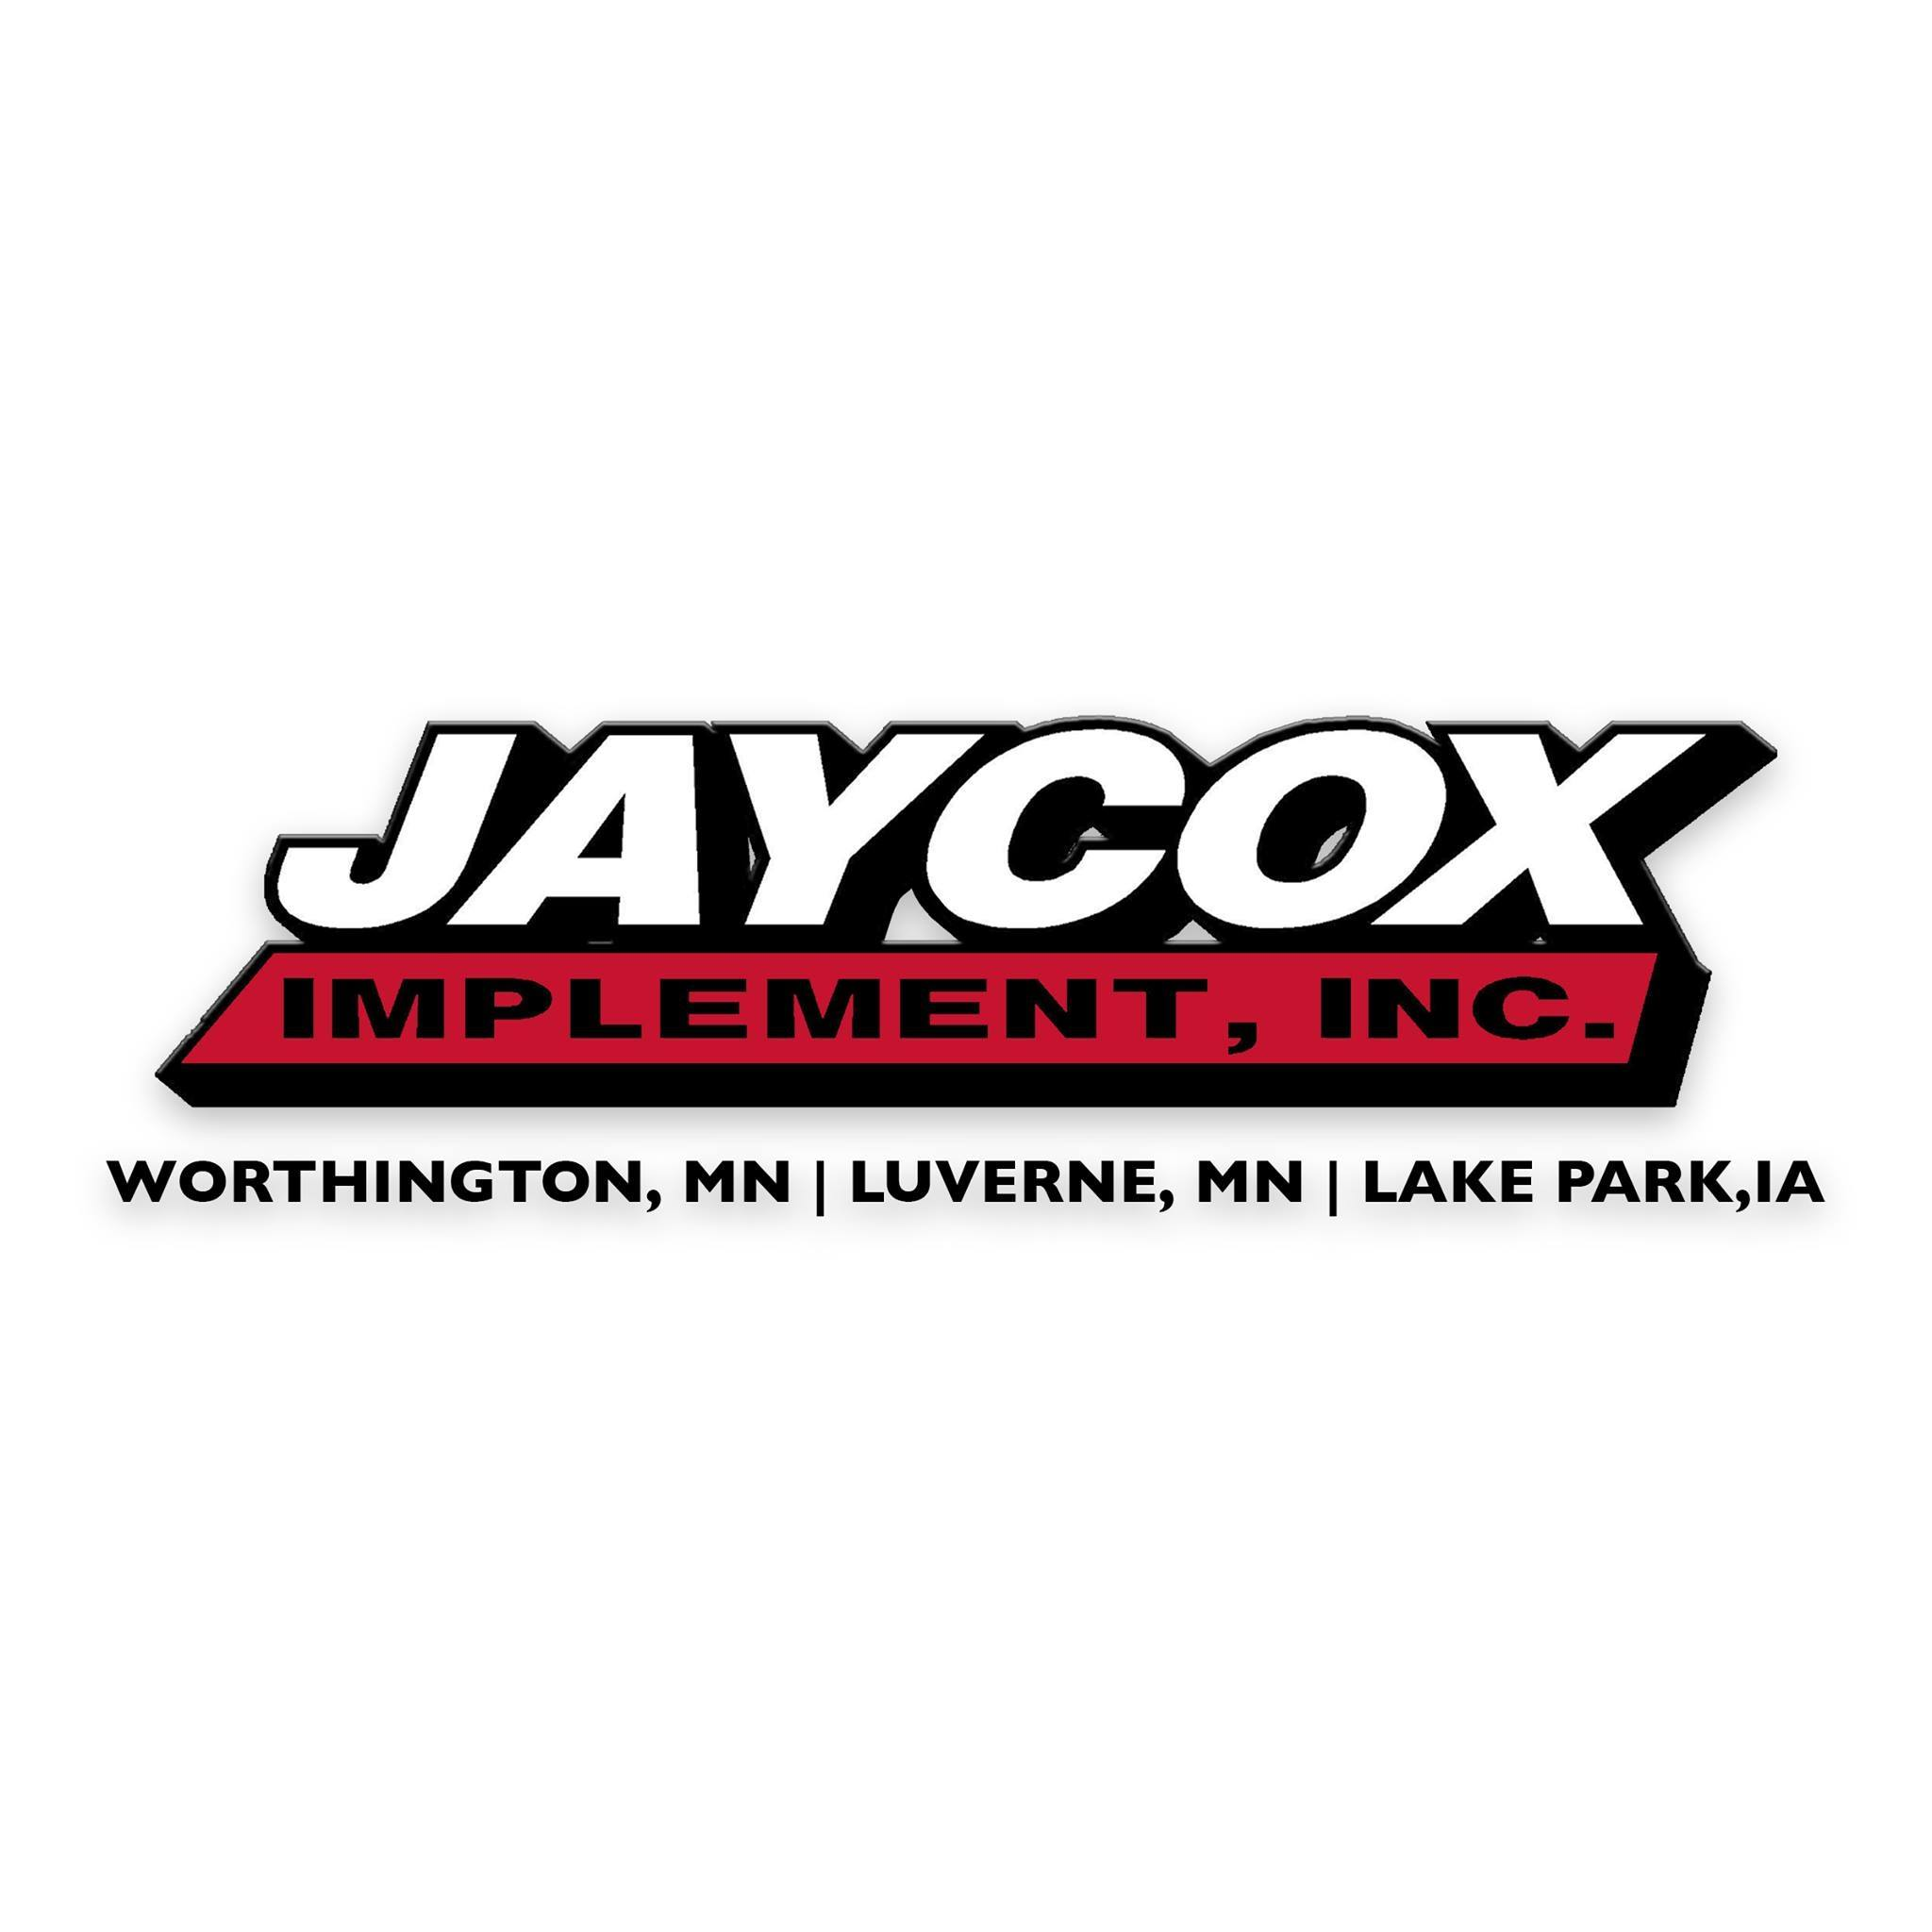 Jaycox Implement